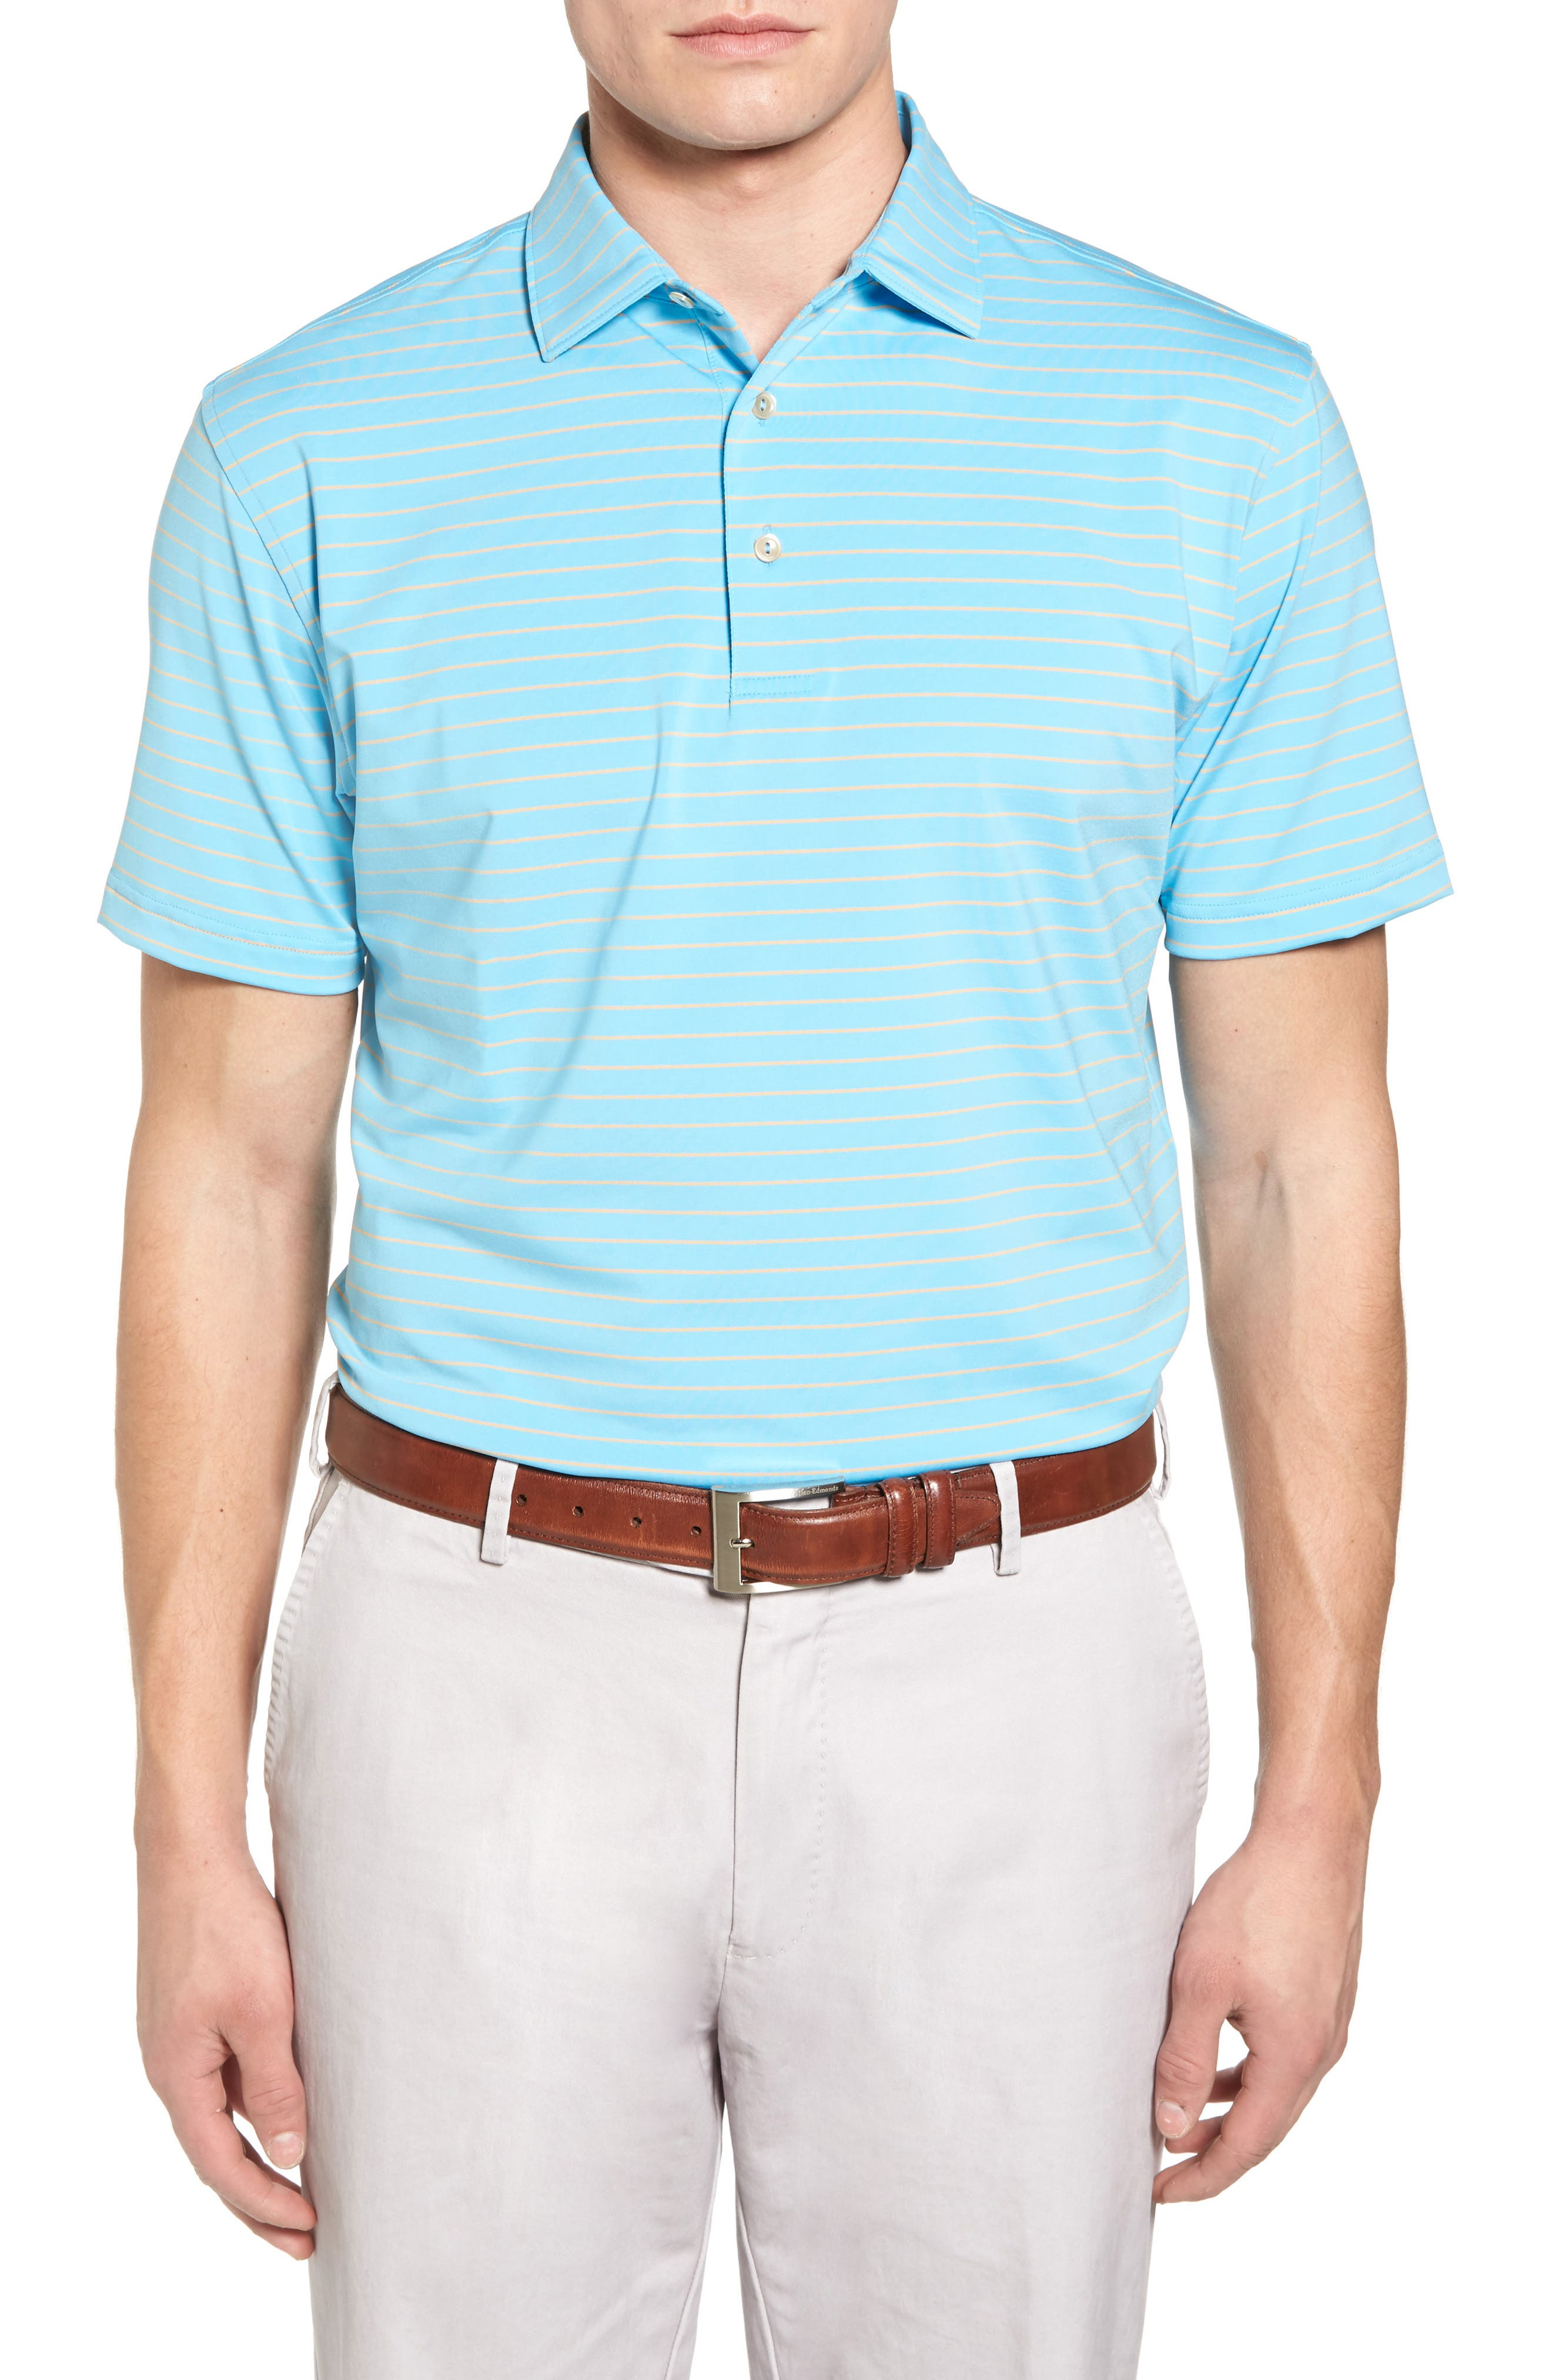 Halifax Pinstripe Stretch Jersey Polo,                         Main,                         color, Grotto Blue